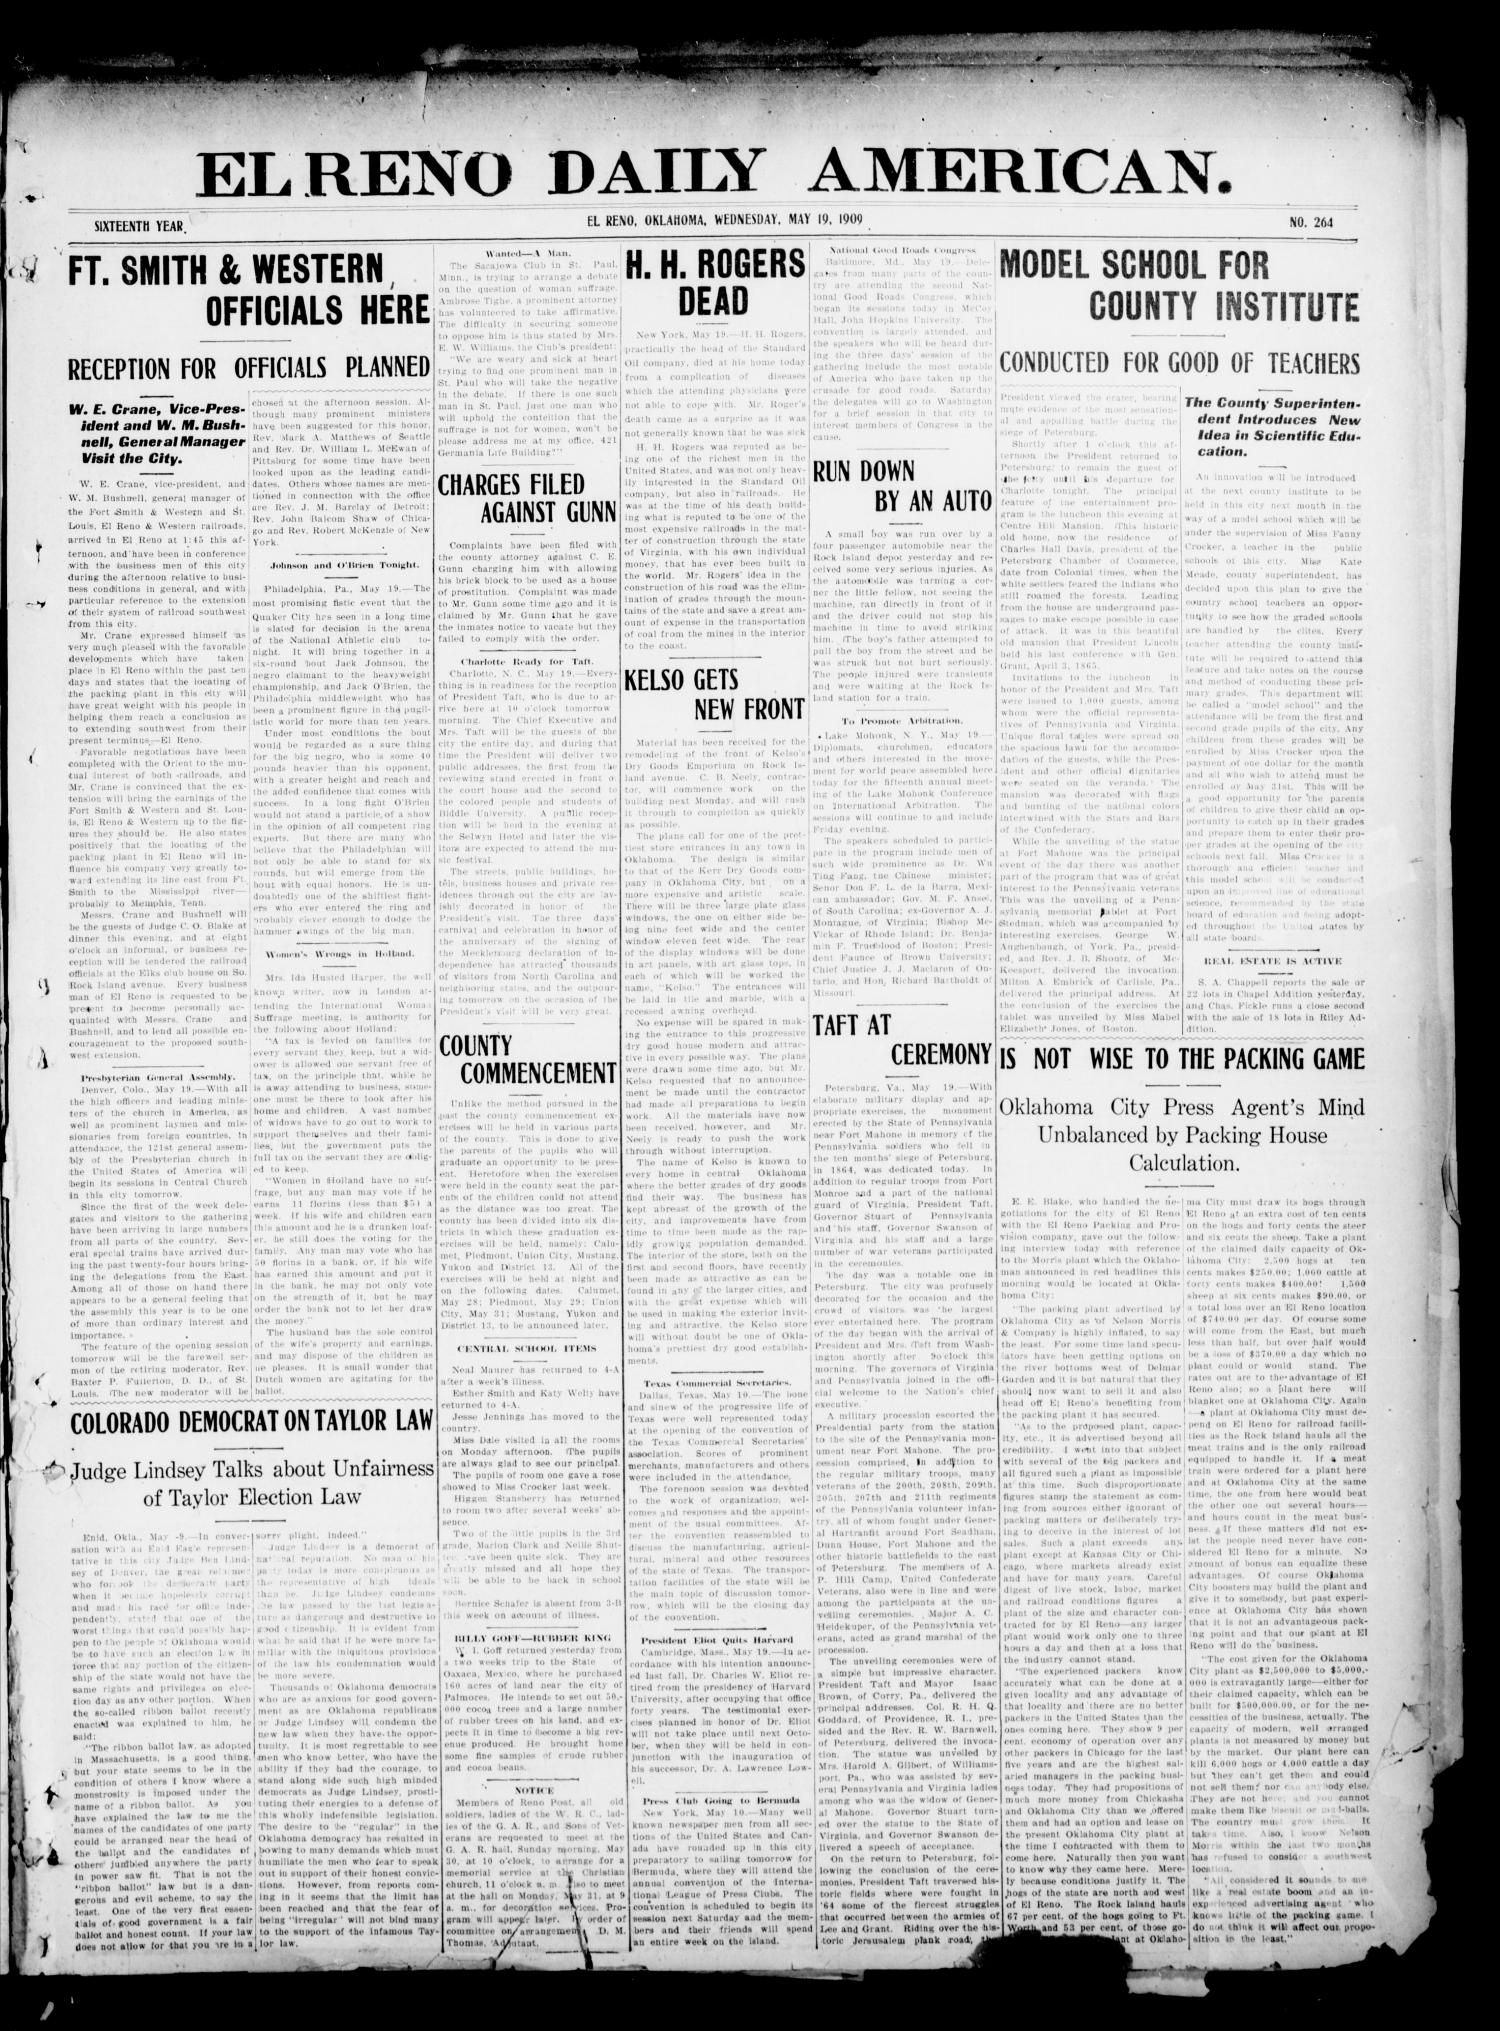 El Reno Daily American. (El Reno, Okla.), Vol. 16, No. 264, Ed. 1 Wednesday, May 19, 1909                                                                                                      [Sequence #]: 1 of 4